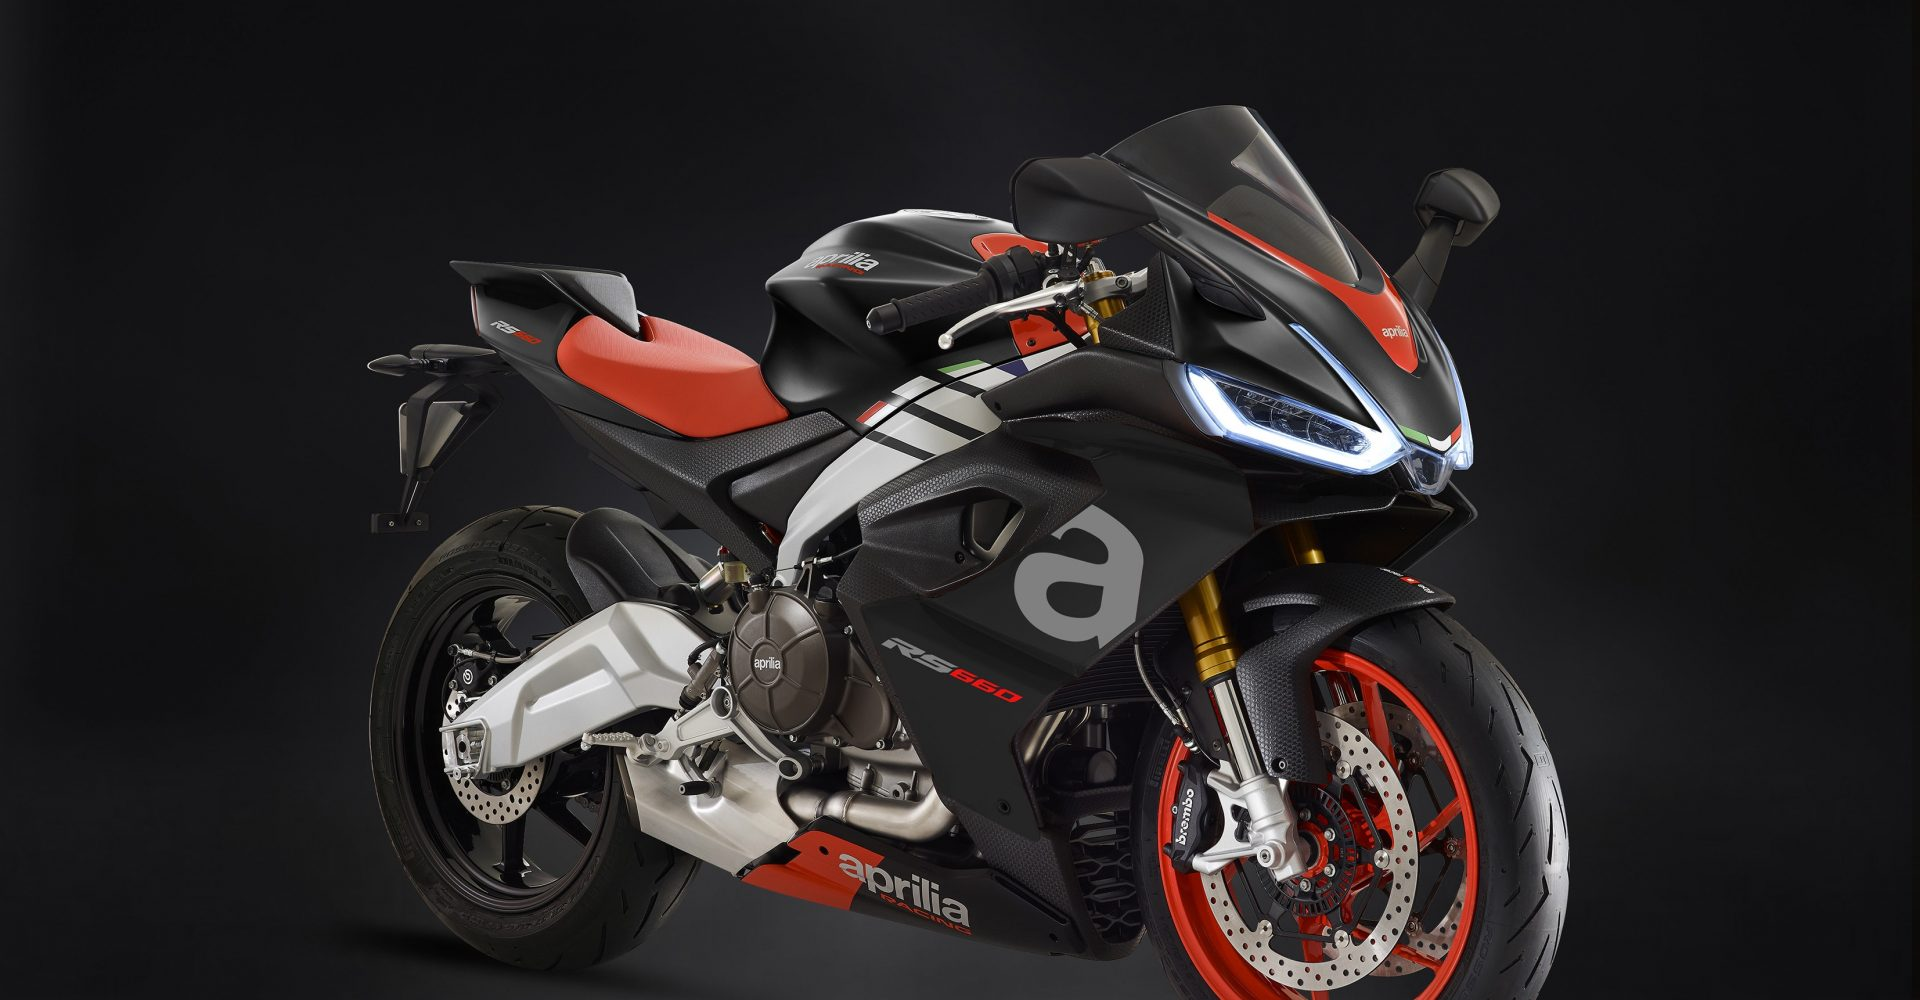 Aprilia RS 660 to be adapted for A2 licence holders